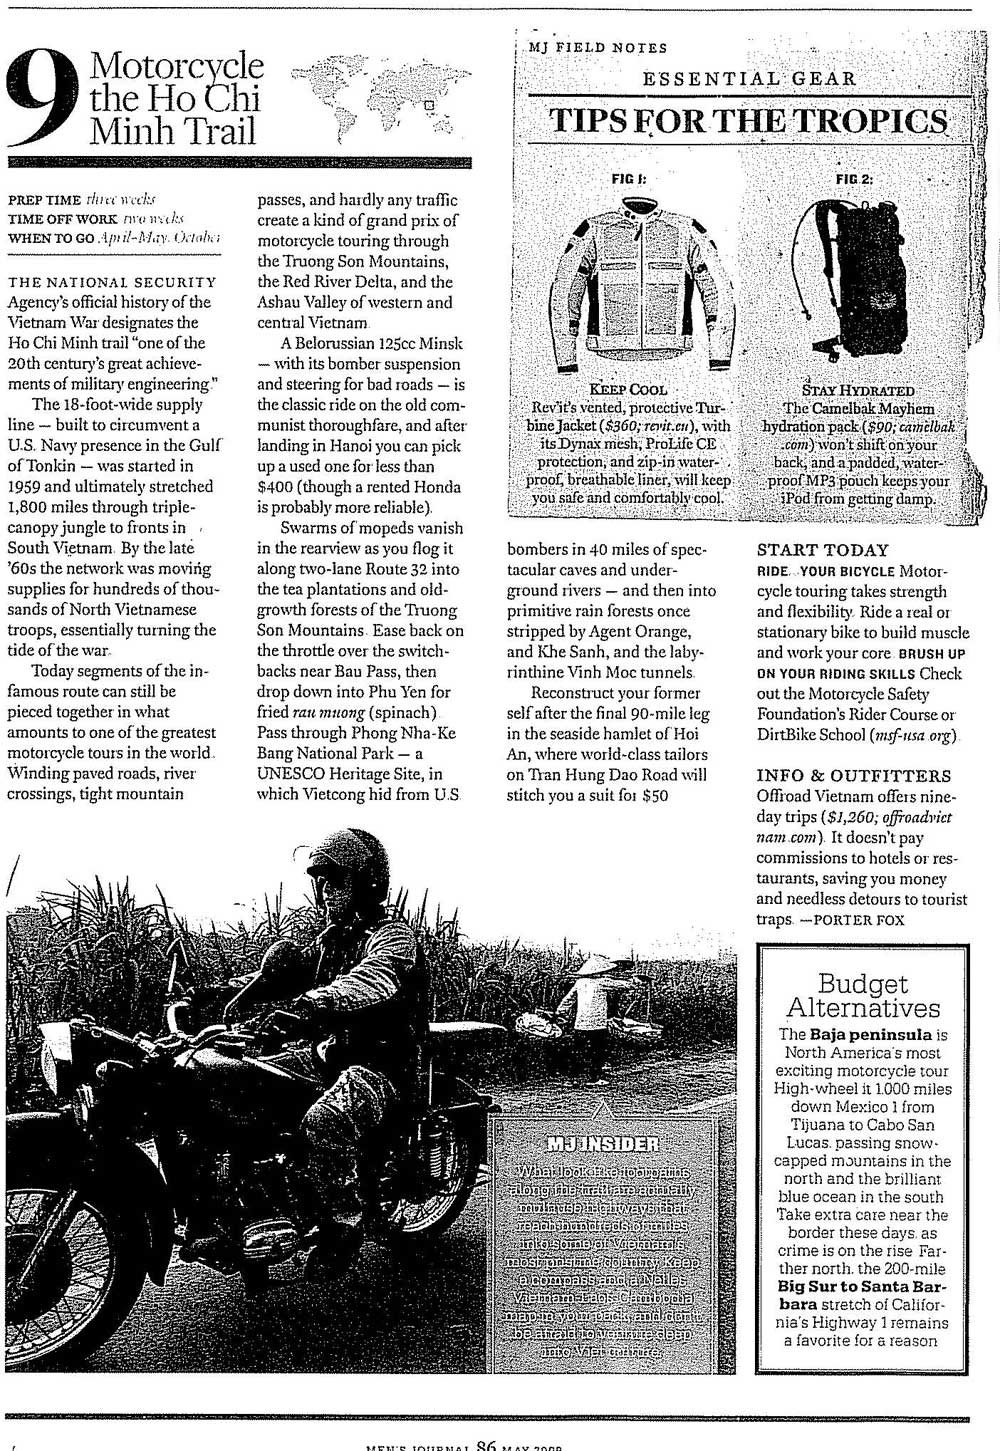 Men's Jornal about HCMT motorcycling